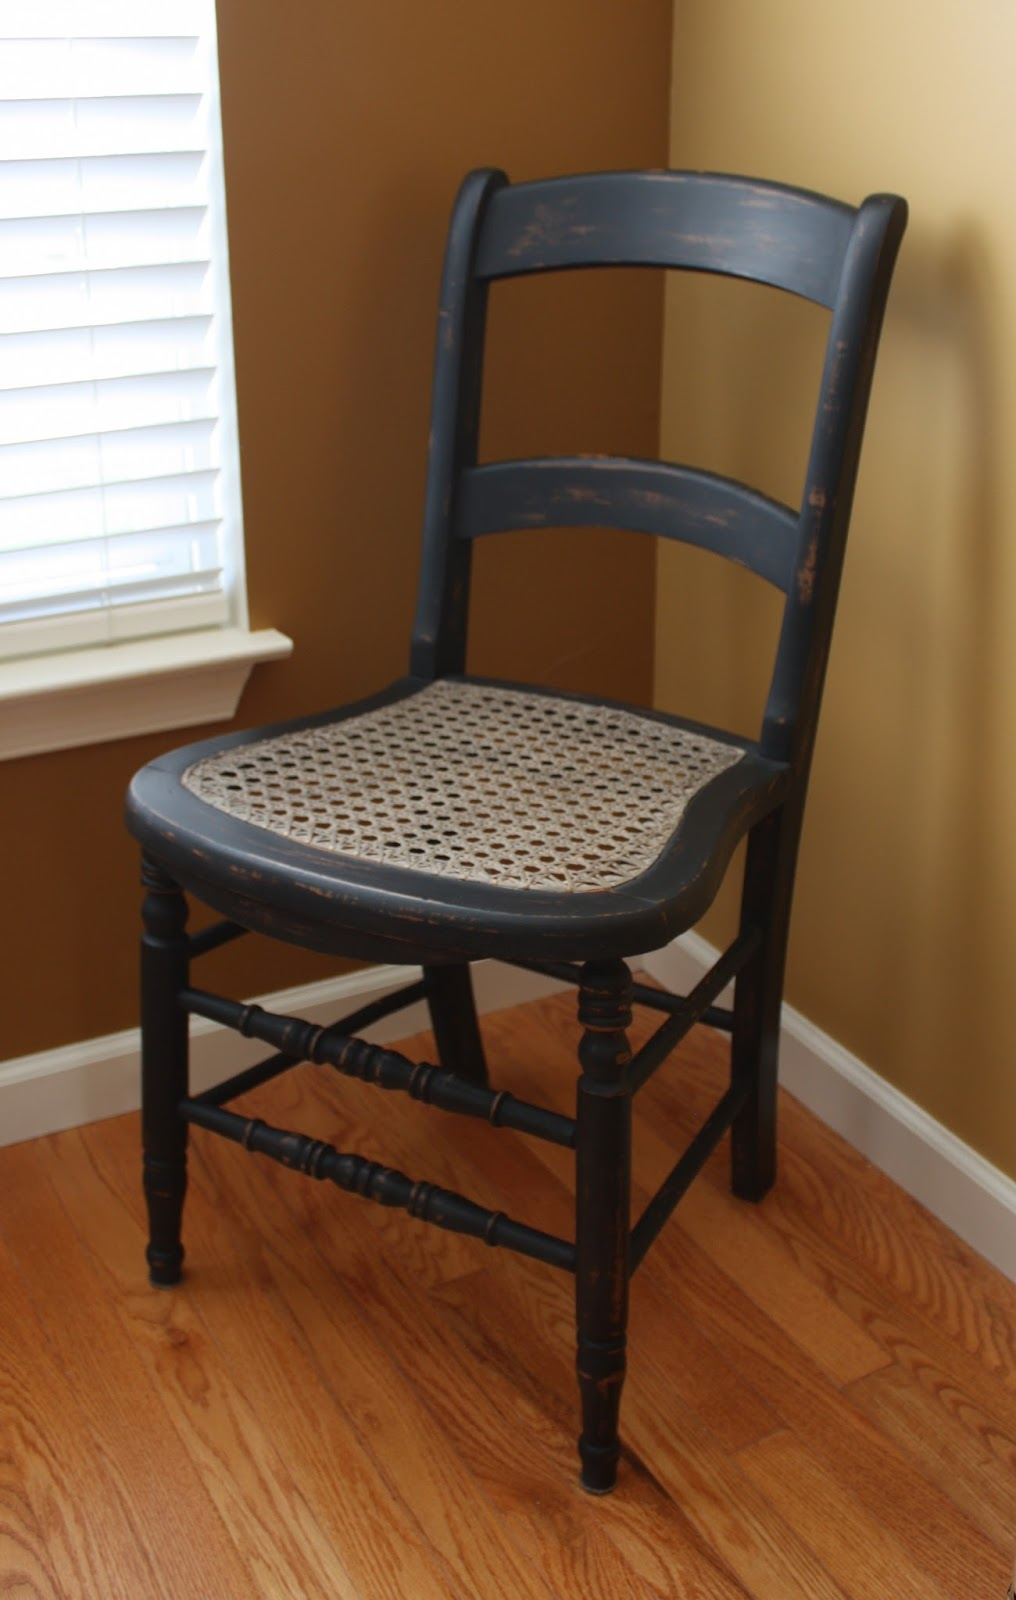 Chair painted black with dark wax.